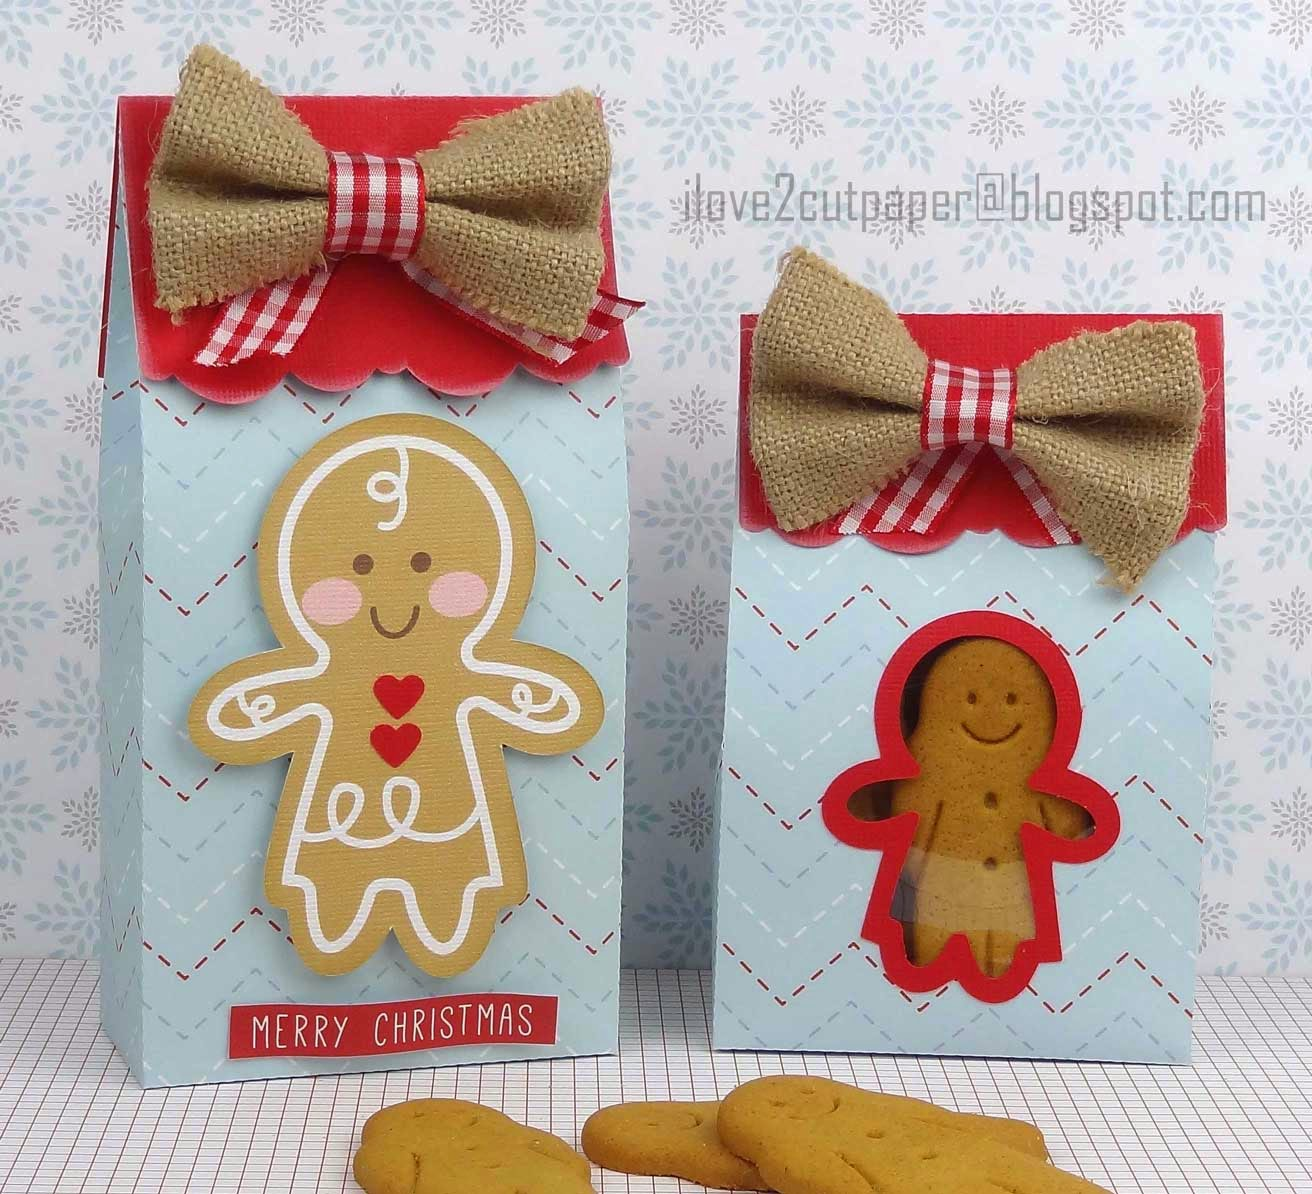 Resized gift bags for Christmas gifts